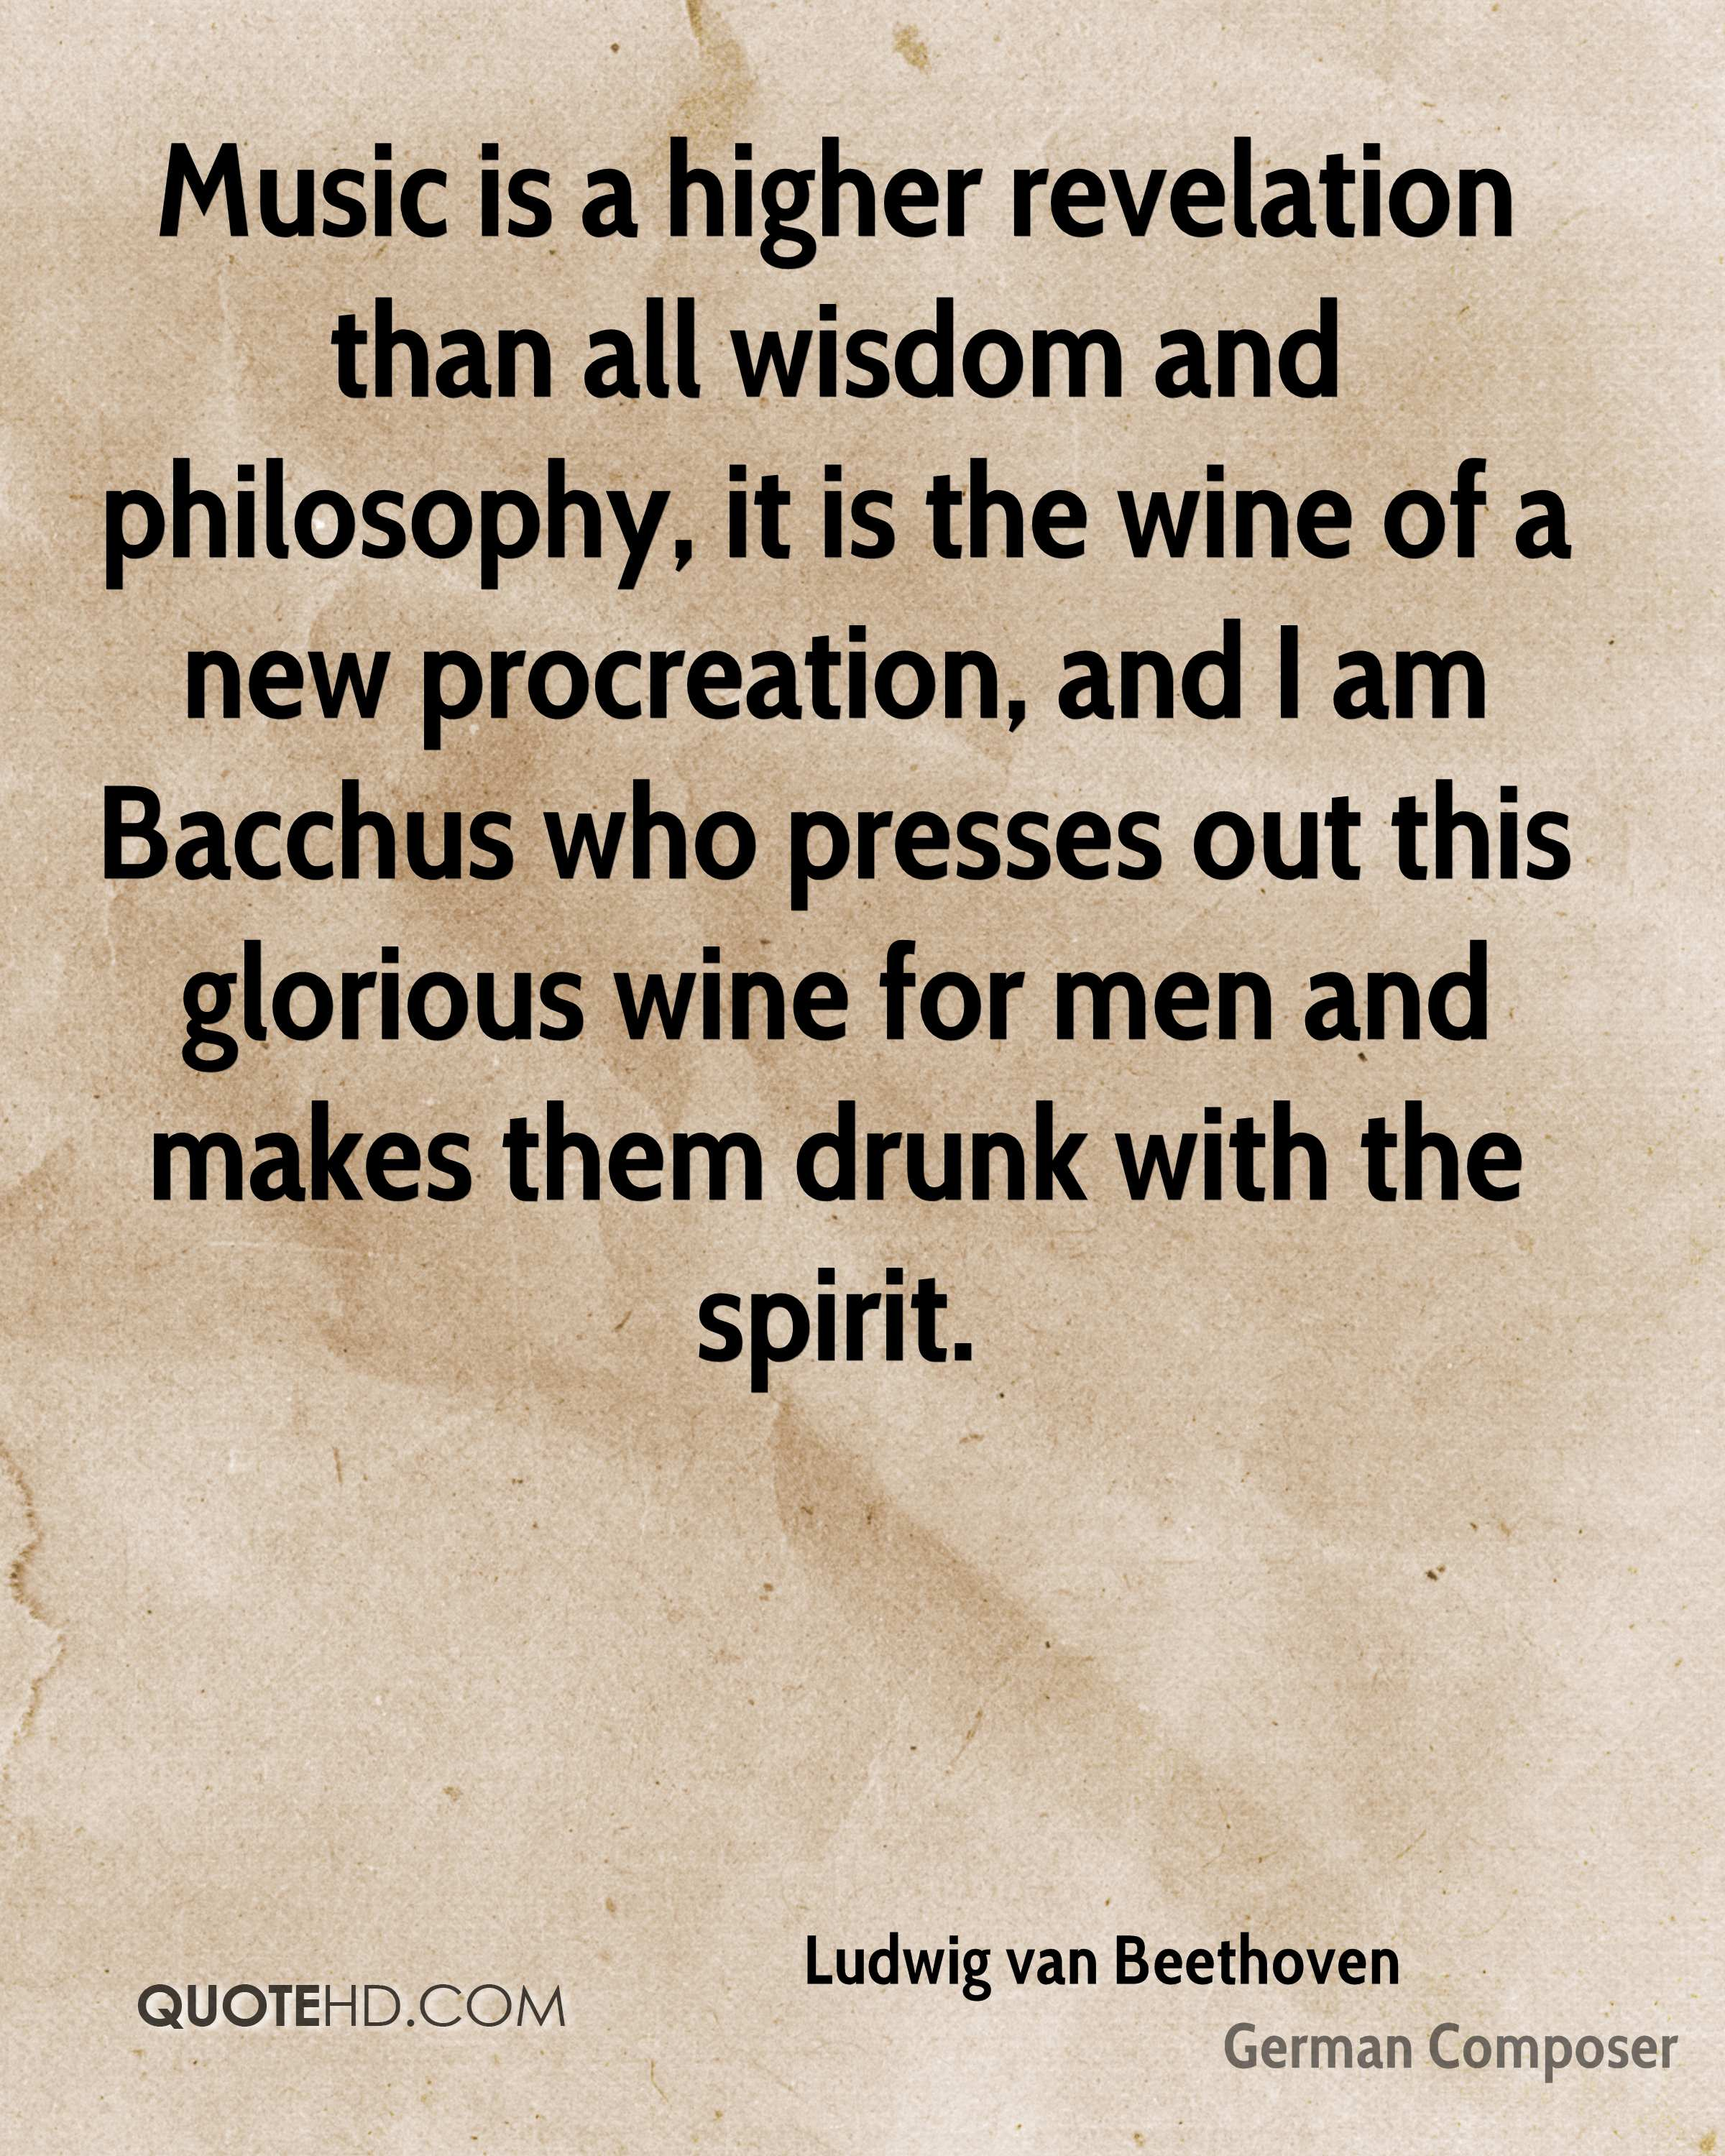 Music is a higher revelation than all wisdom and philosophy, it is the wine of a new procreation, and I am Bacchus who presses out this glorious wine for men and makes them drunk with the spirit.